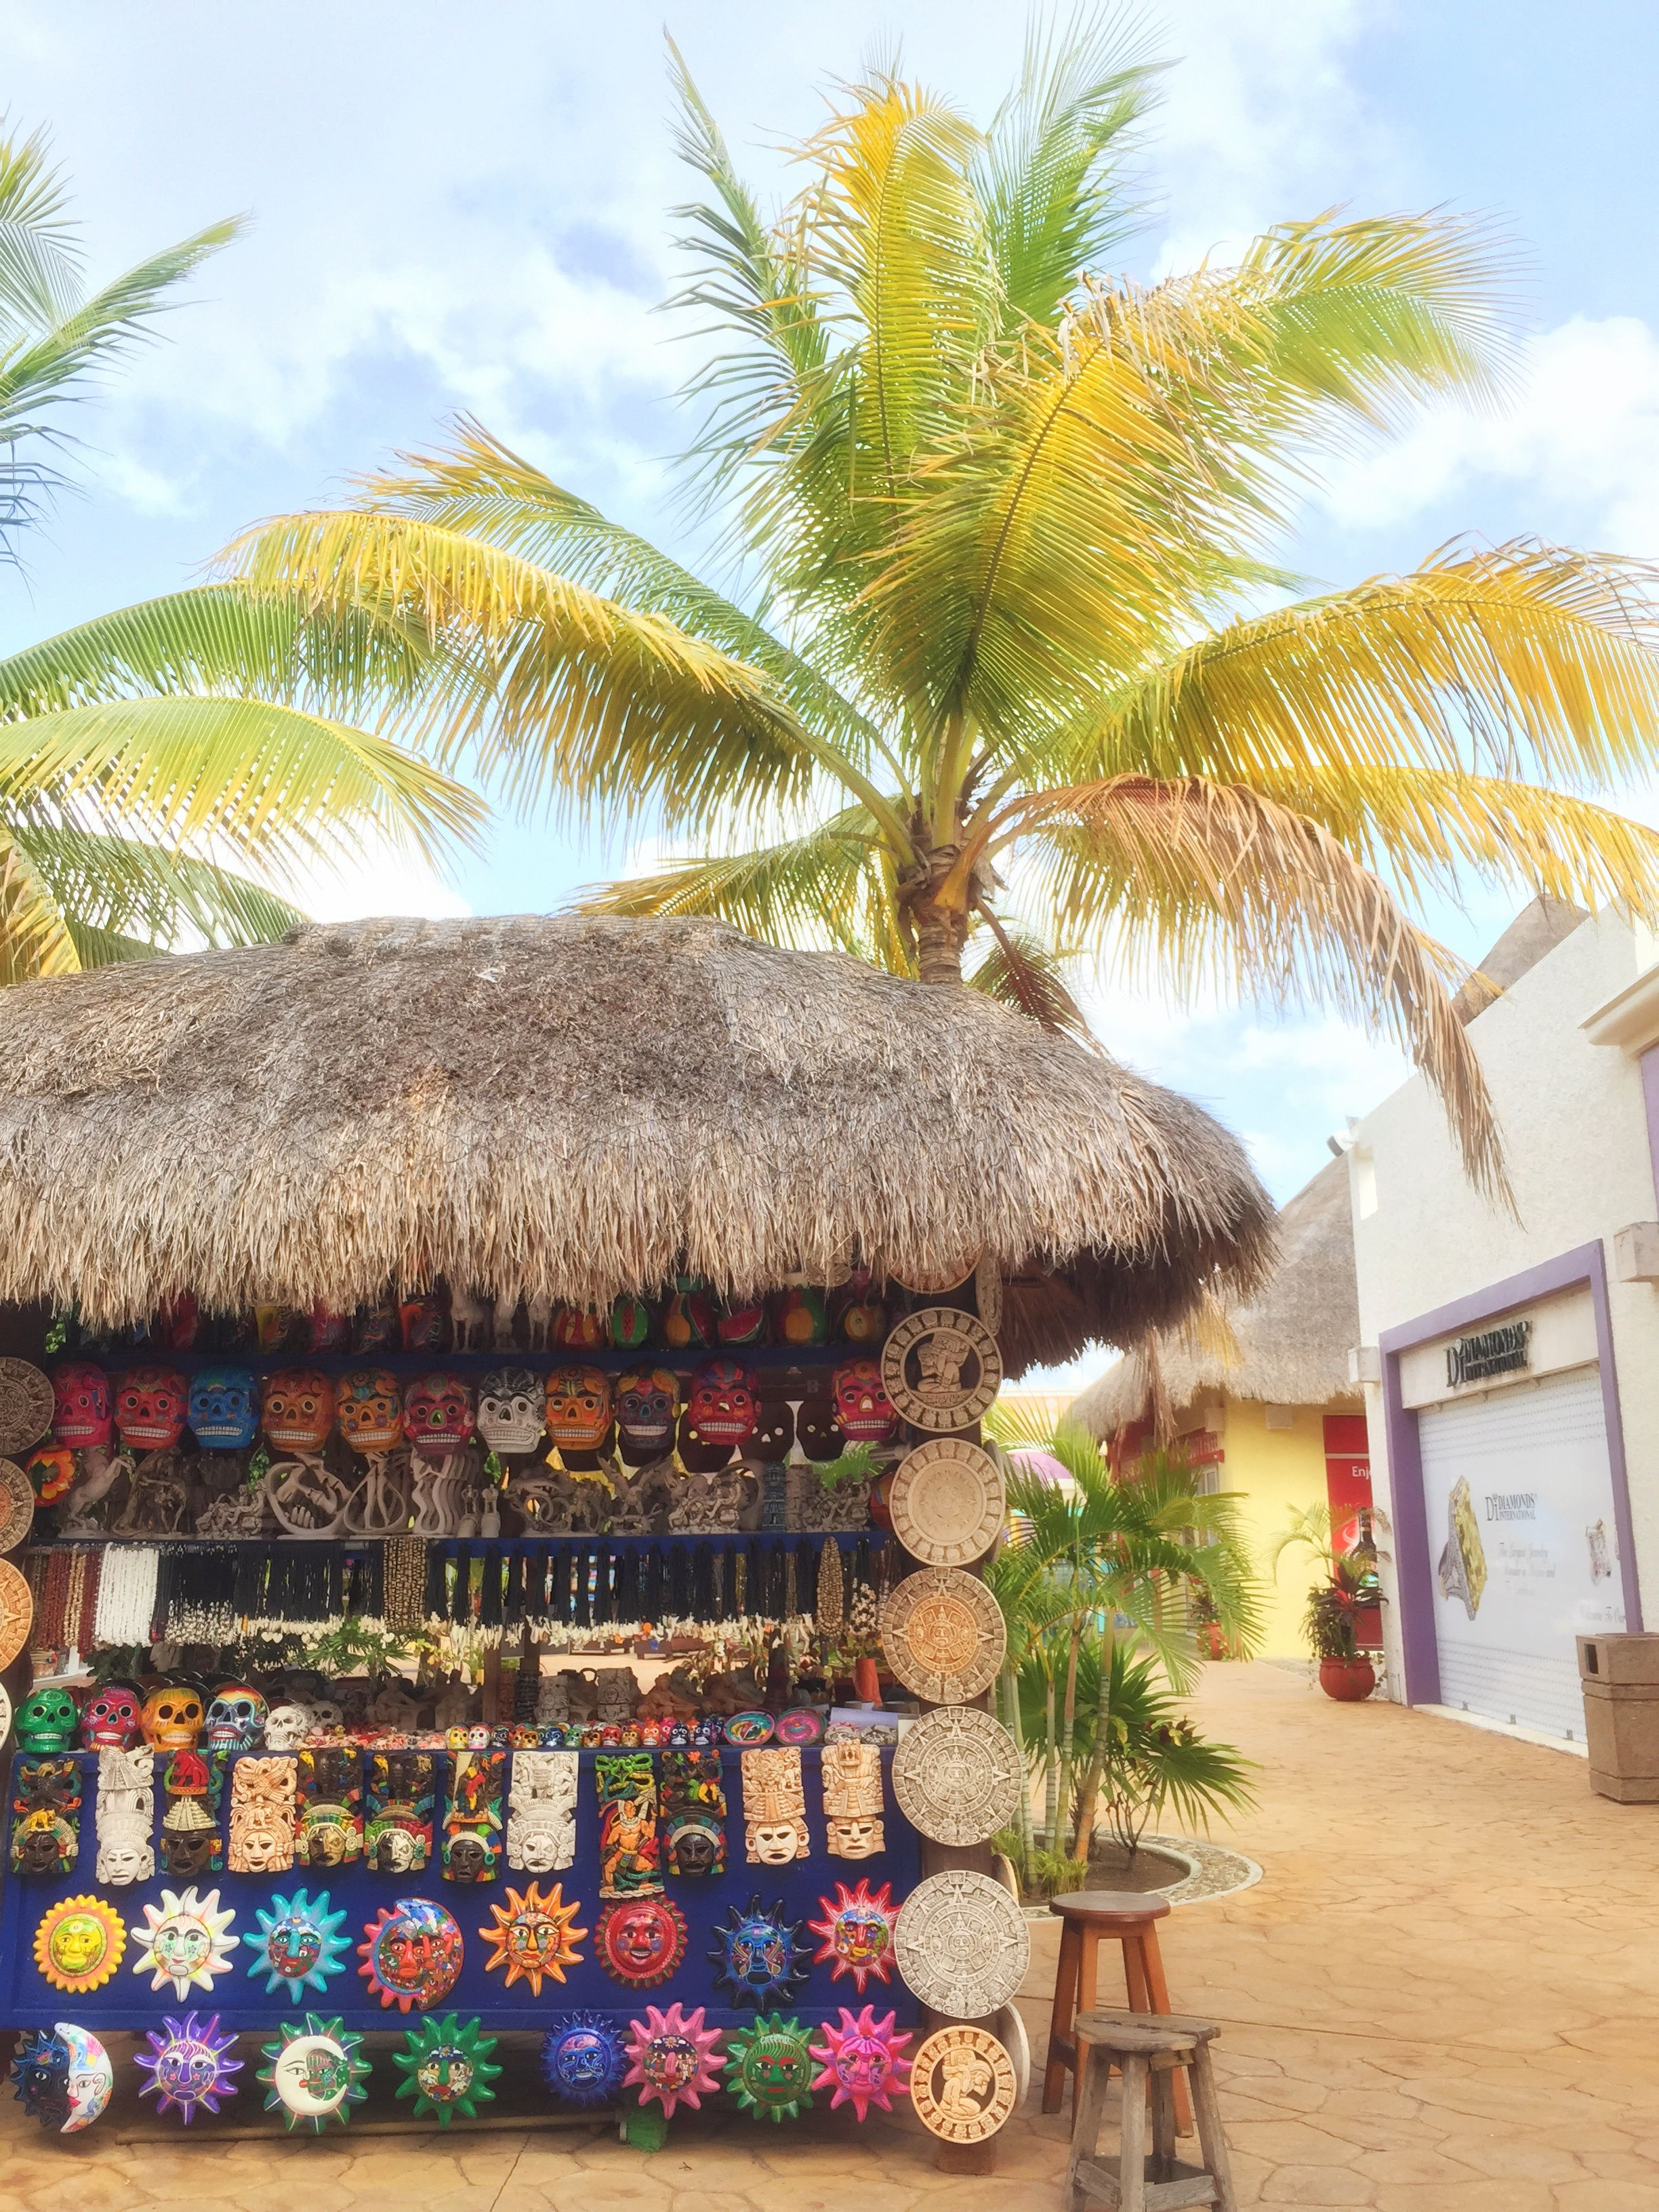 7 Best Things To Do In Cozumel Mexico With Images Cozumel